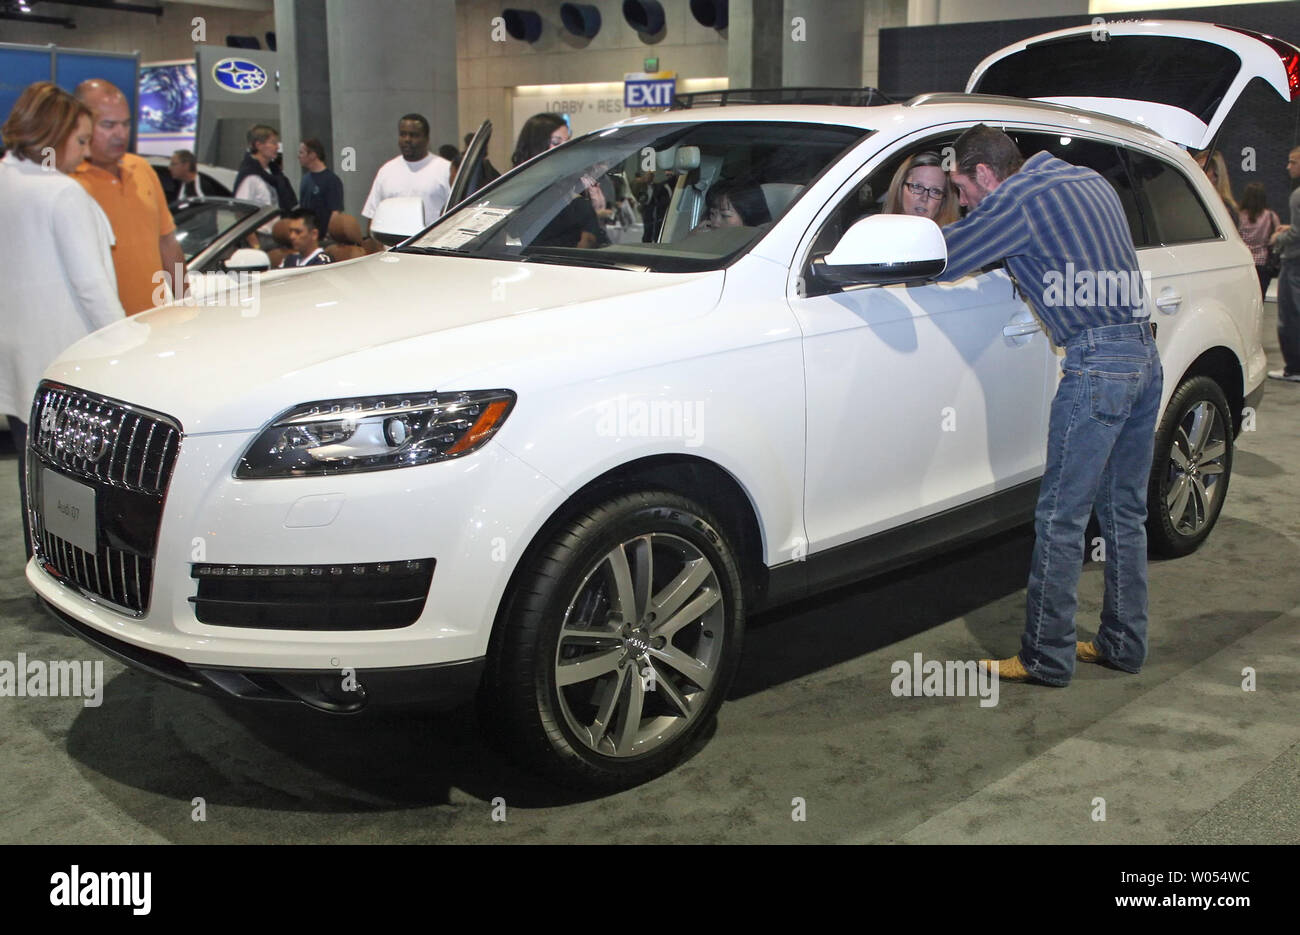 San Diego Audi >> Visitors Check Out An Audi Q7 At The 2010 San Diego